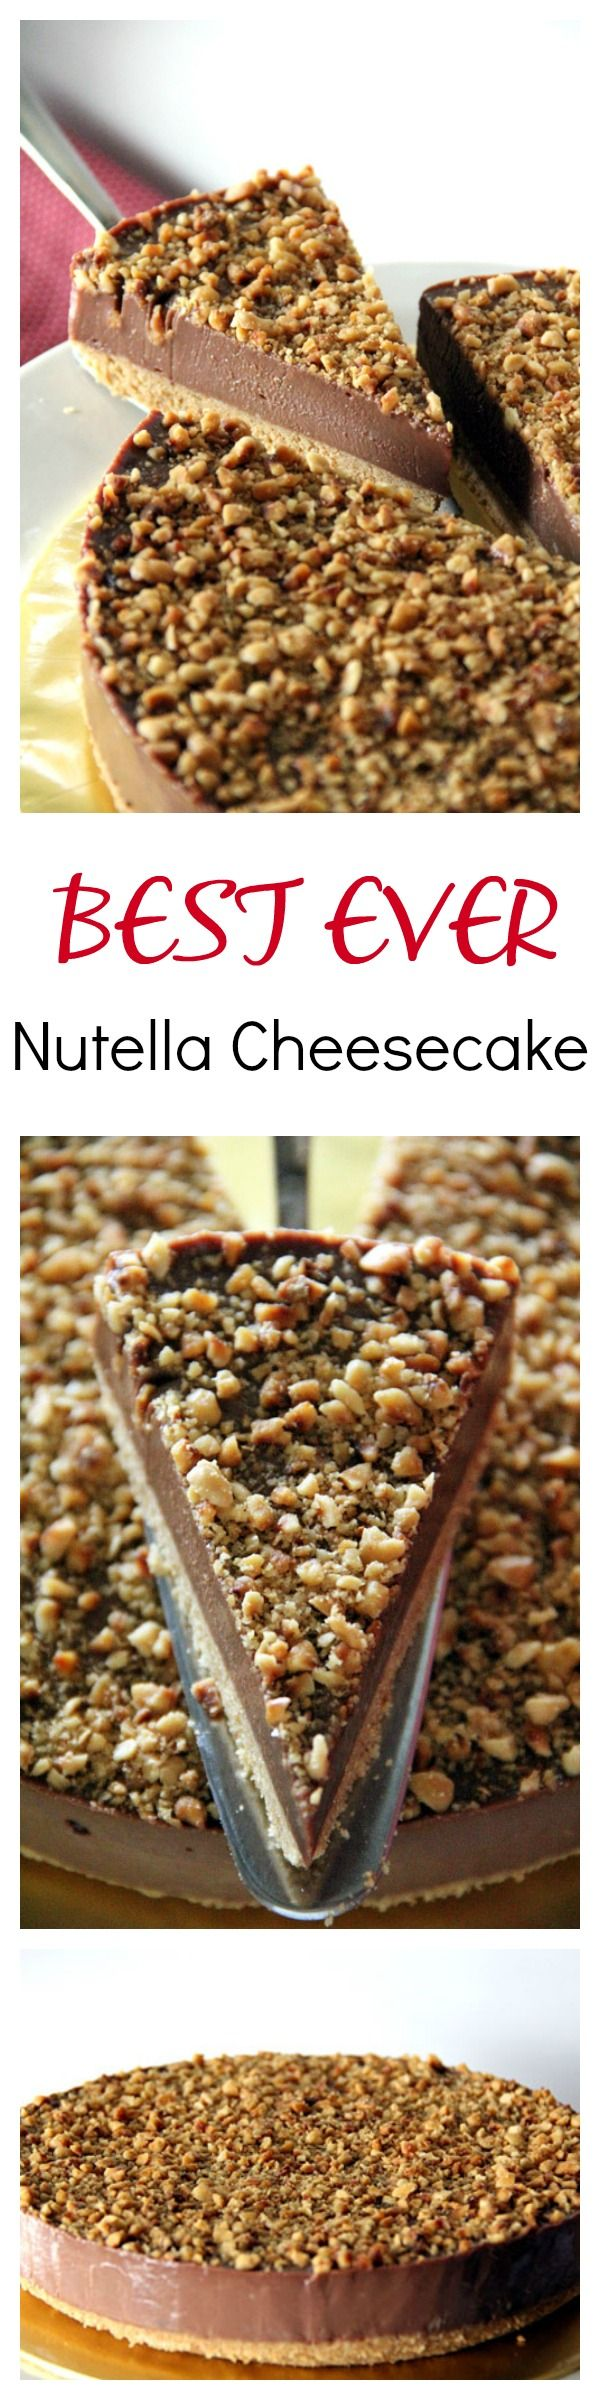 Nutella Cheesecake - easy no-bake cheesecake loaded with Nutella and hazelnut. Creamy, rich, the best Nutella Cheesecake recipe ever, by Nigella Lawson.